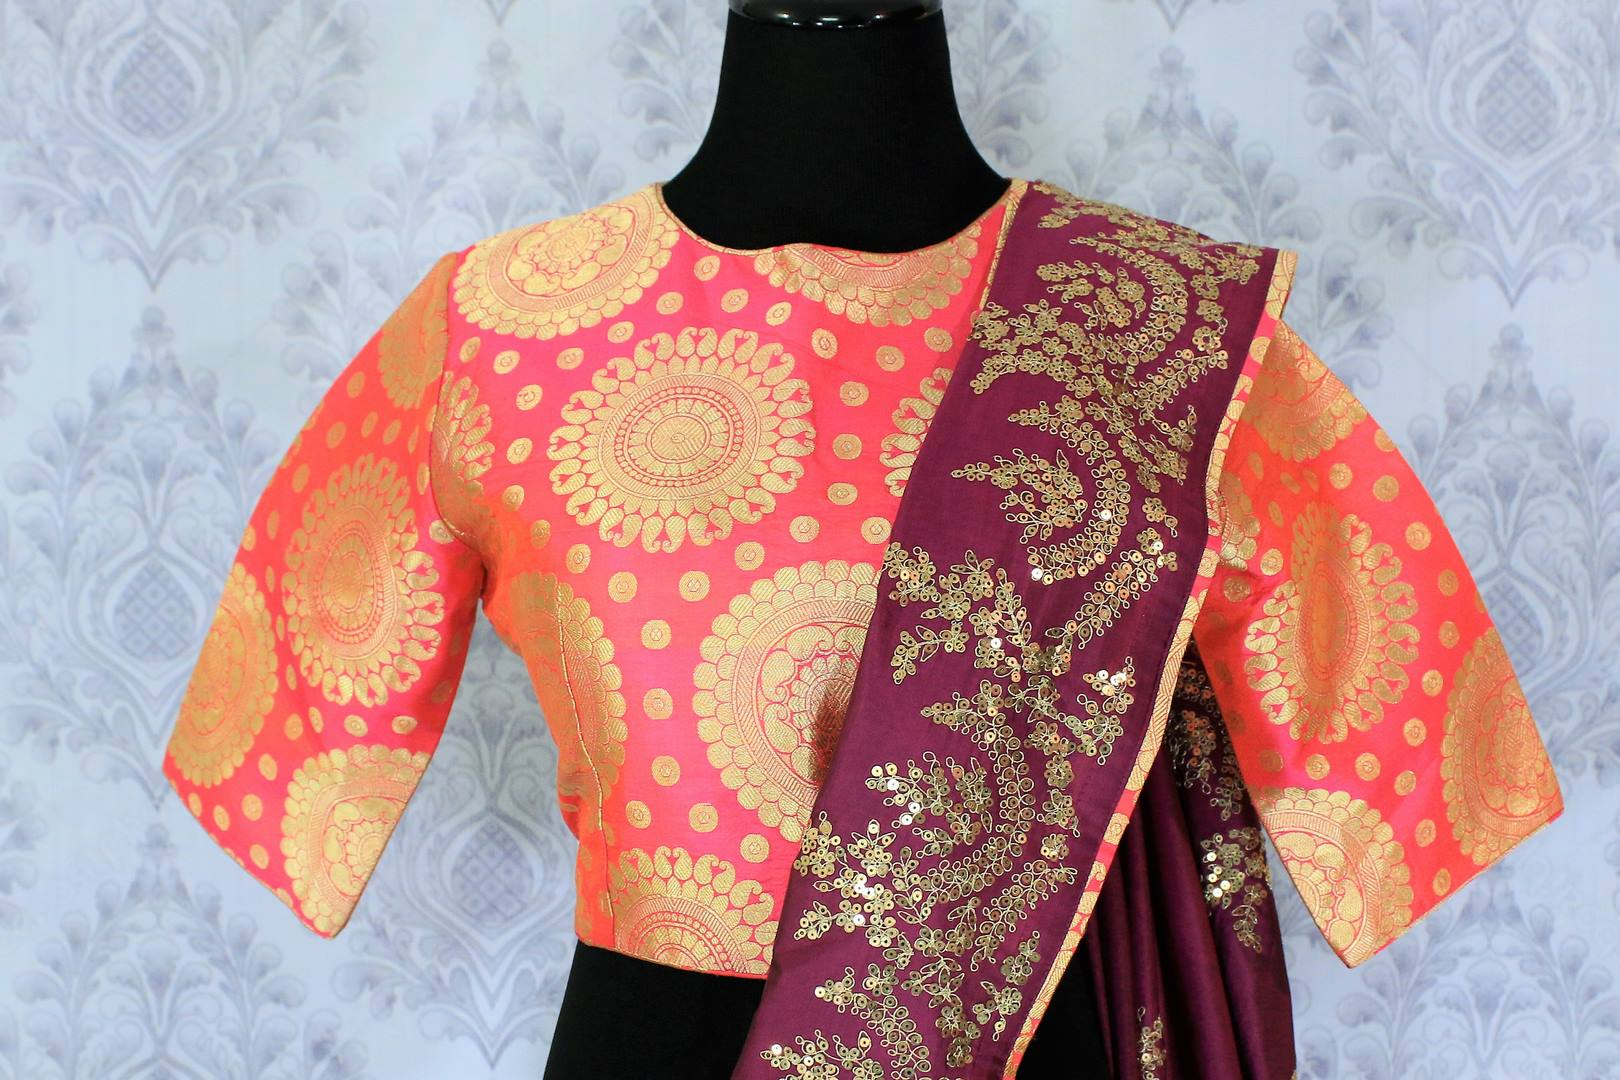 Buy purple silk saree online in USA with ticki work. The saree is an alluring choice for a traditional look at weddings and special occasions. Buy more such Indian designer sarees in USA at Pure Elegance exclusive fashion store or shop online at the comfort of your home.-blouse pallu